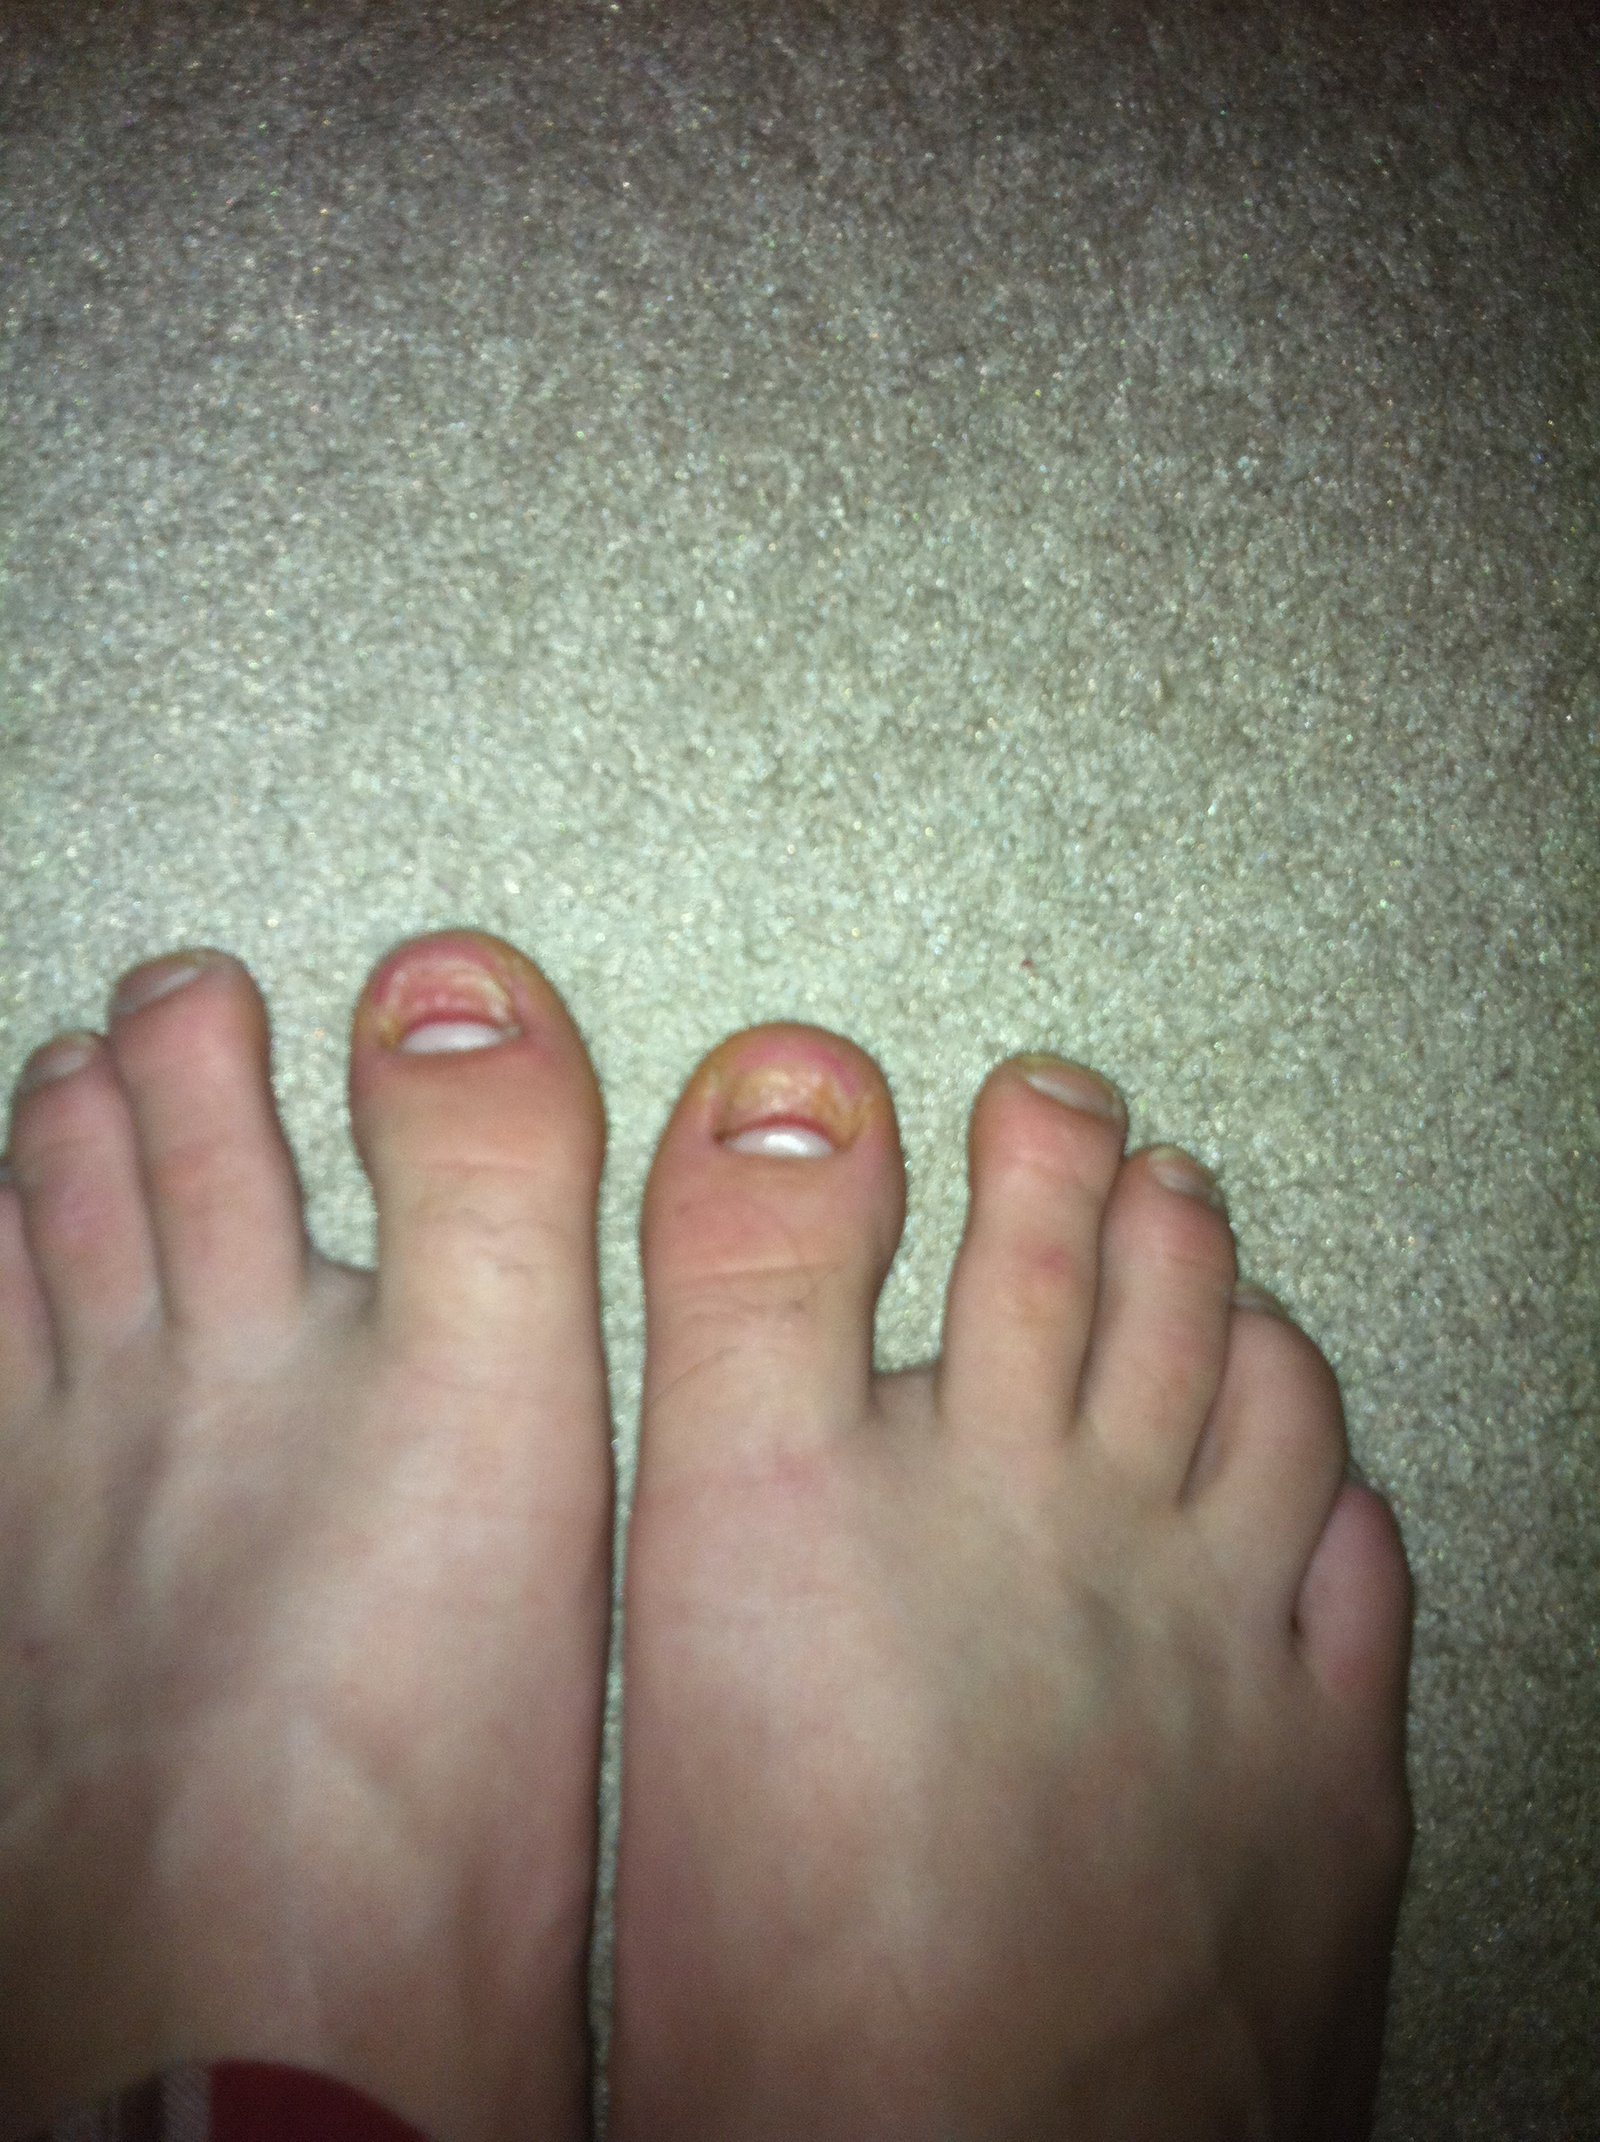 Two toenails lost CLAIM